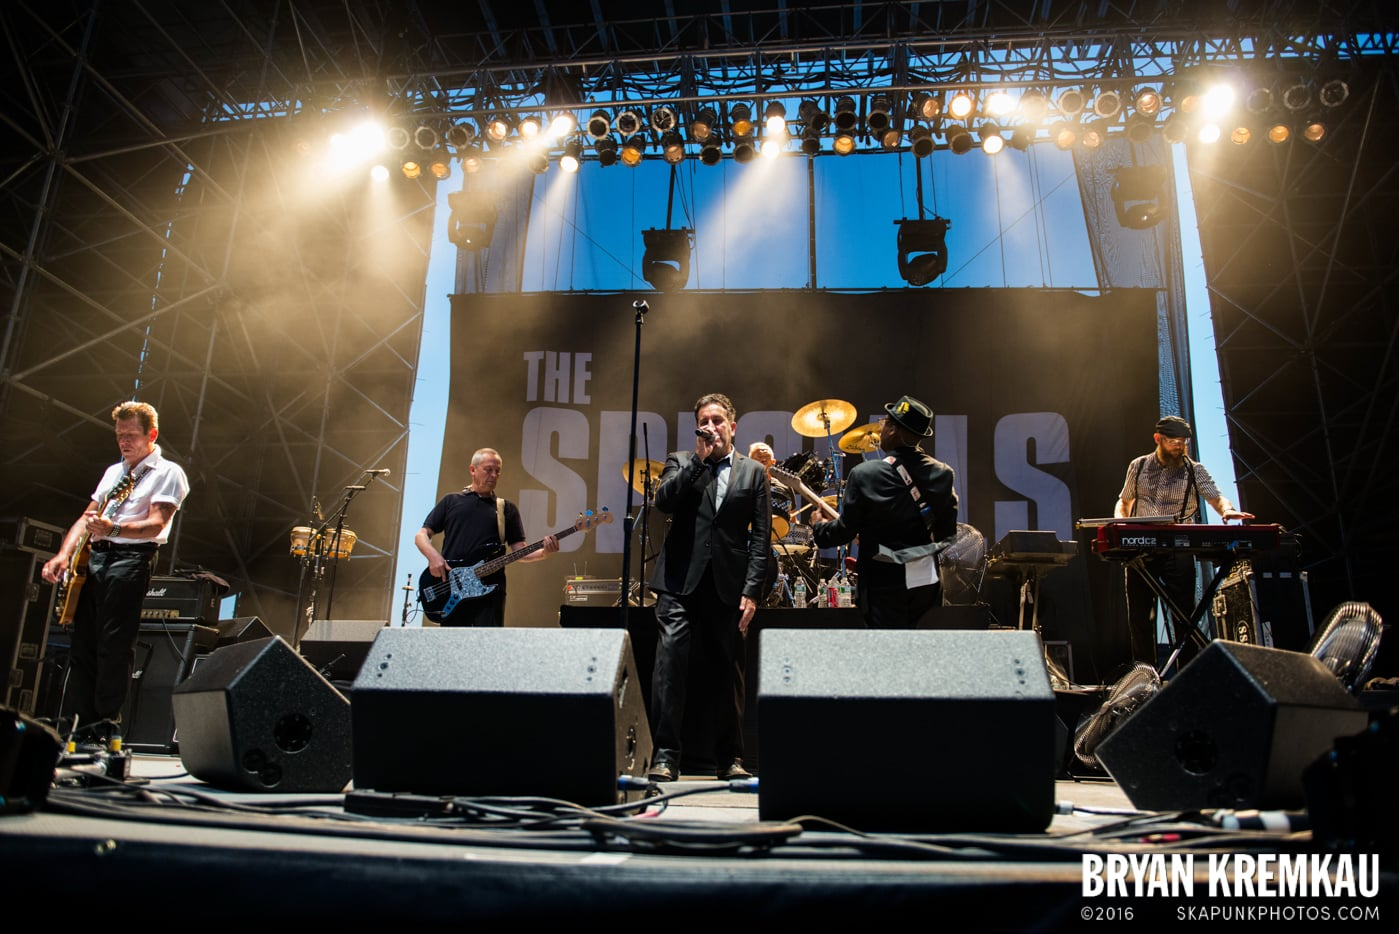 The Specials @ Pier 26, Hudson River Park, NYC (12)